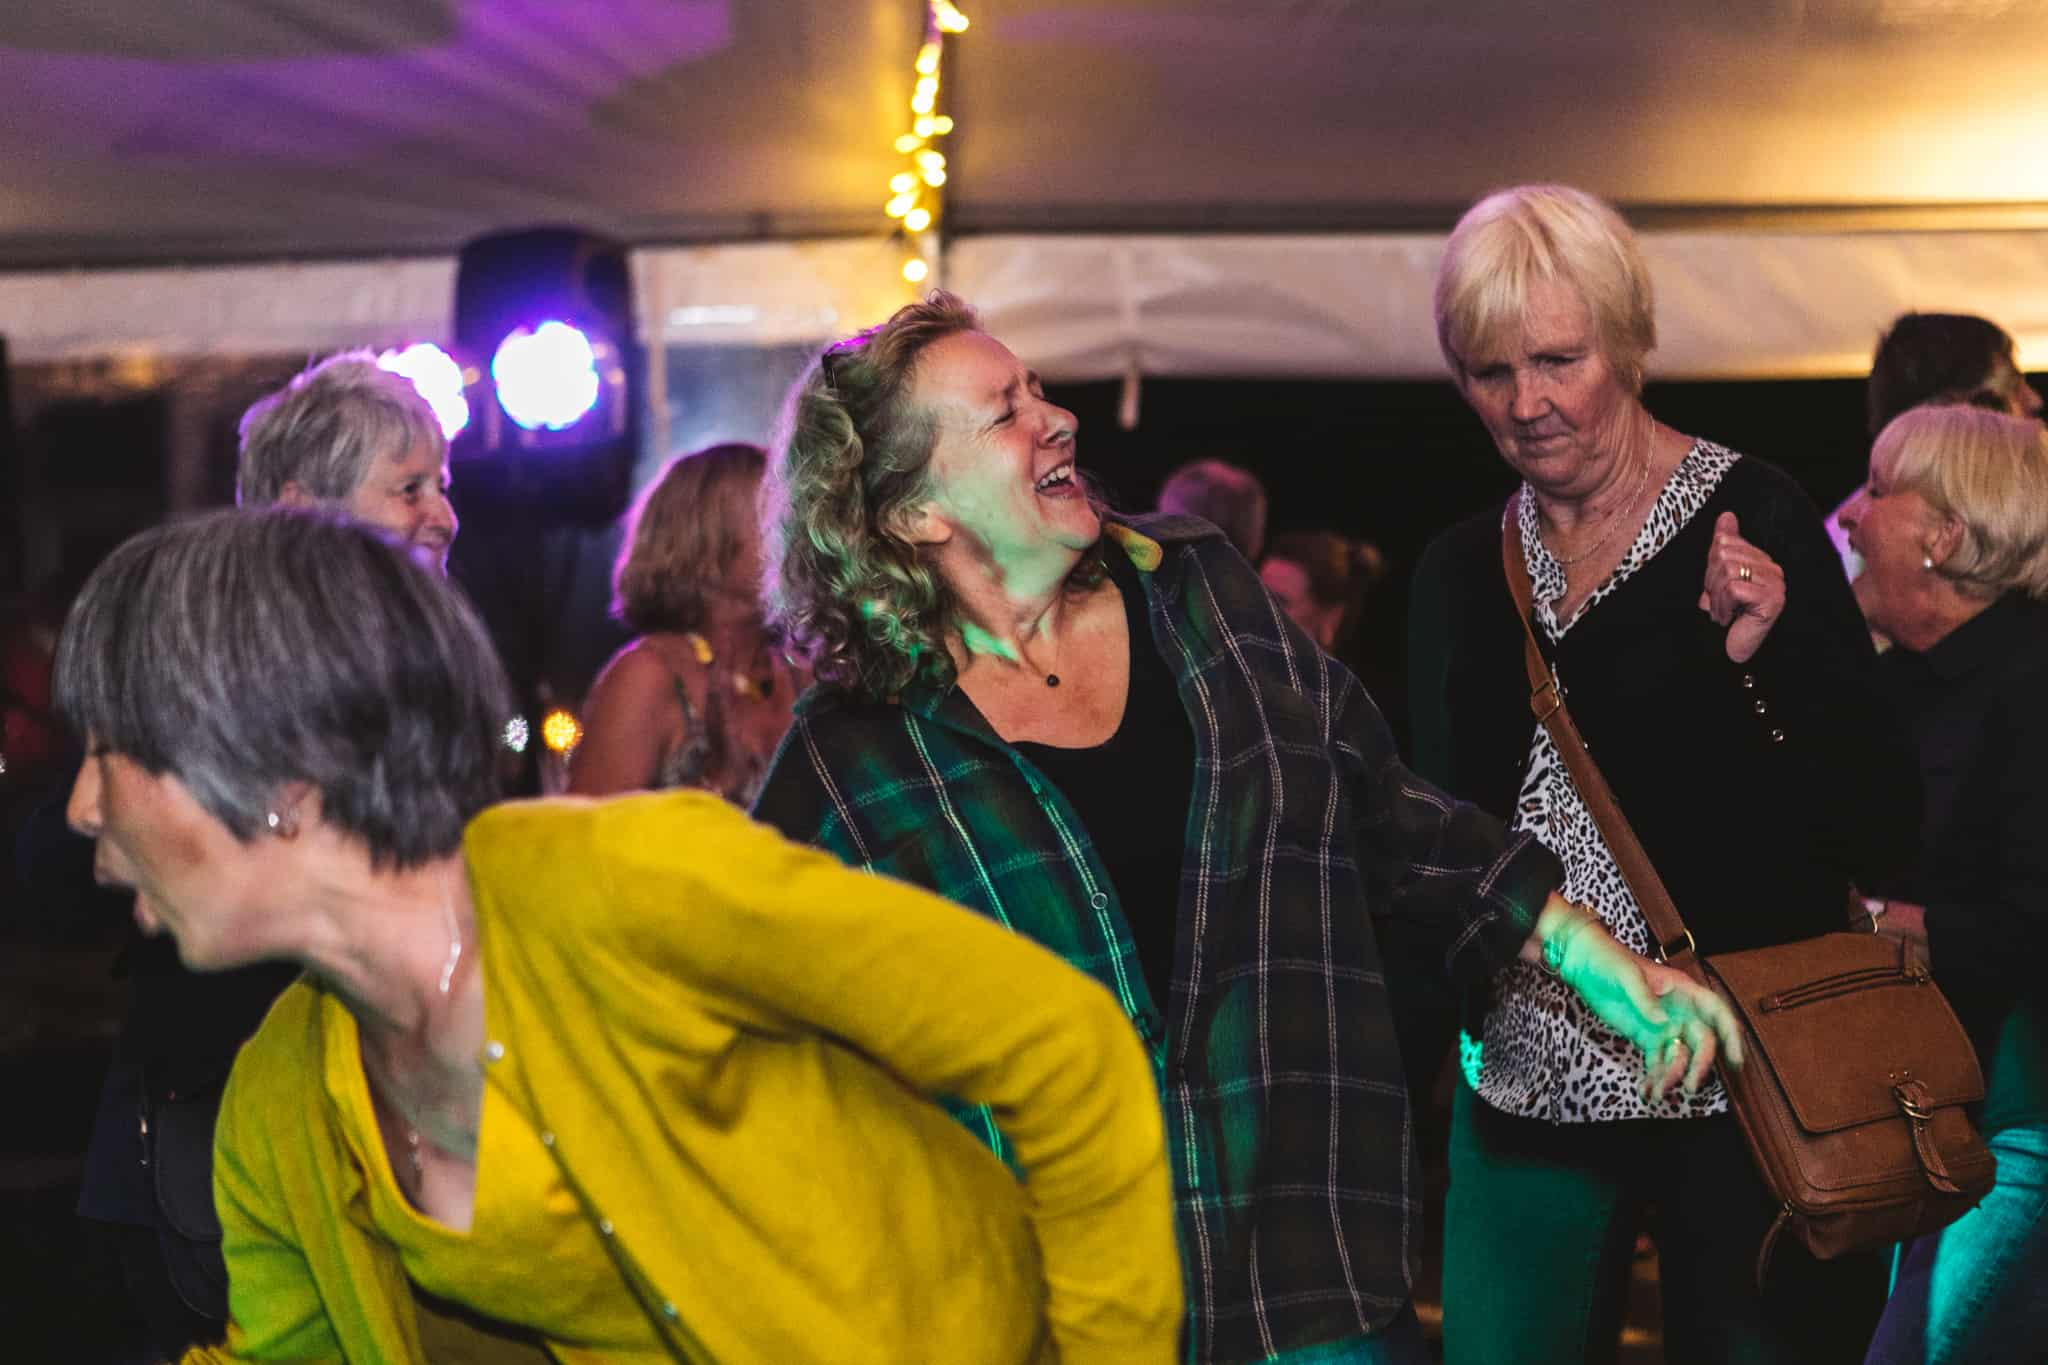 falmouth-week-at-the-working-boat-pub-live-music-events-falmouth-cornwall (73 of 114)